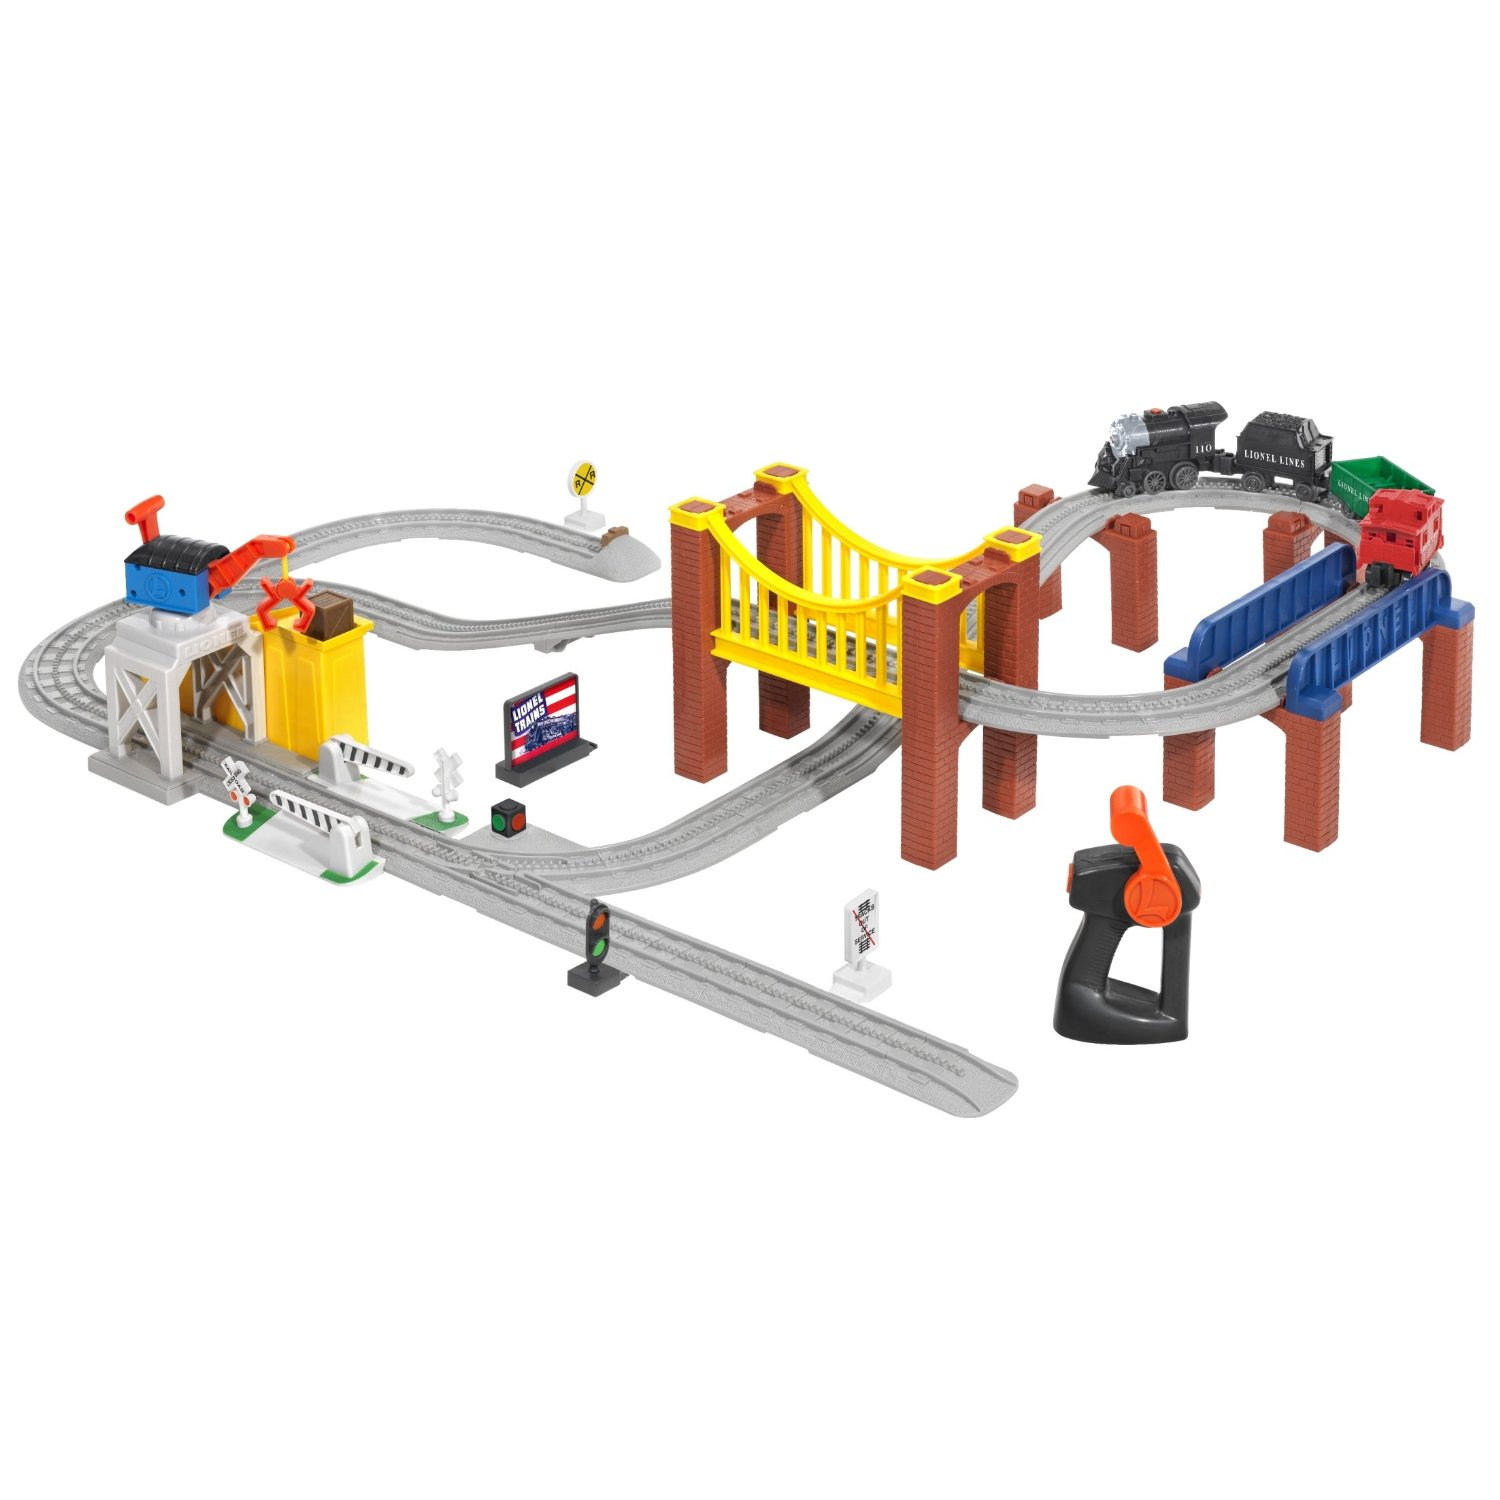 Lionel Trains are ChoooChoooChoooing into the Holidays – Review & Giveaway